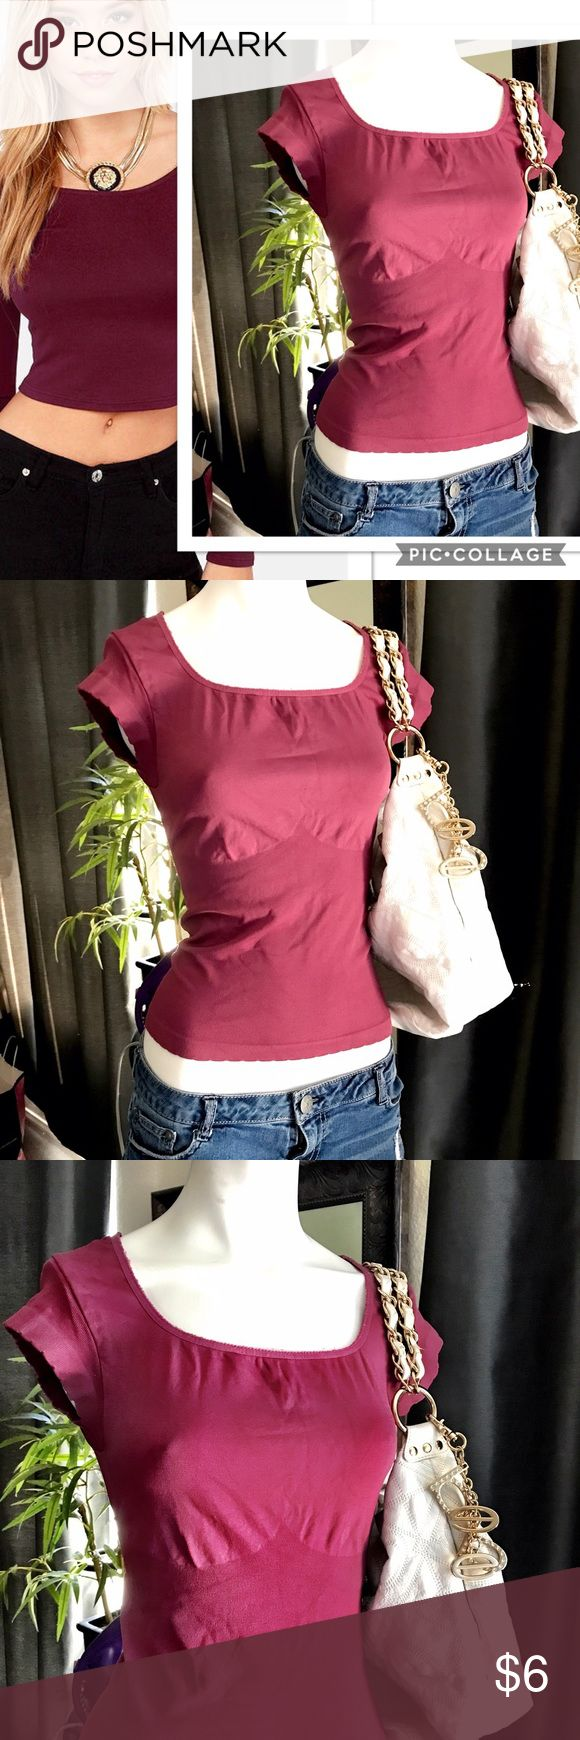 Merona Burgundy Bodycon Top Merona Burgundy Form Fitting Body Con Top. Short sleeve with stretch fitted bodice. Accenture bust line pattern as shown. Size States Medium runs Small. Shown on Size 3/5 Mannequin. Merona Tops Blouses